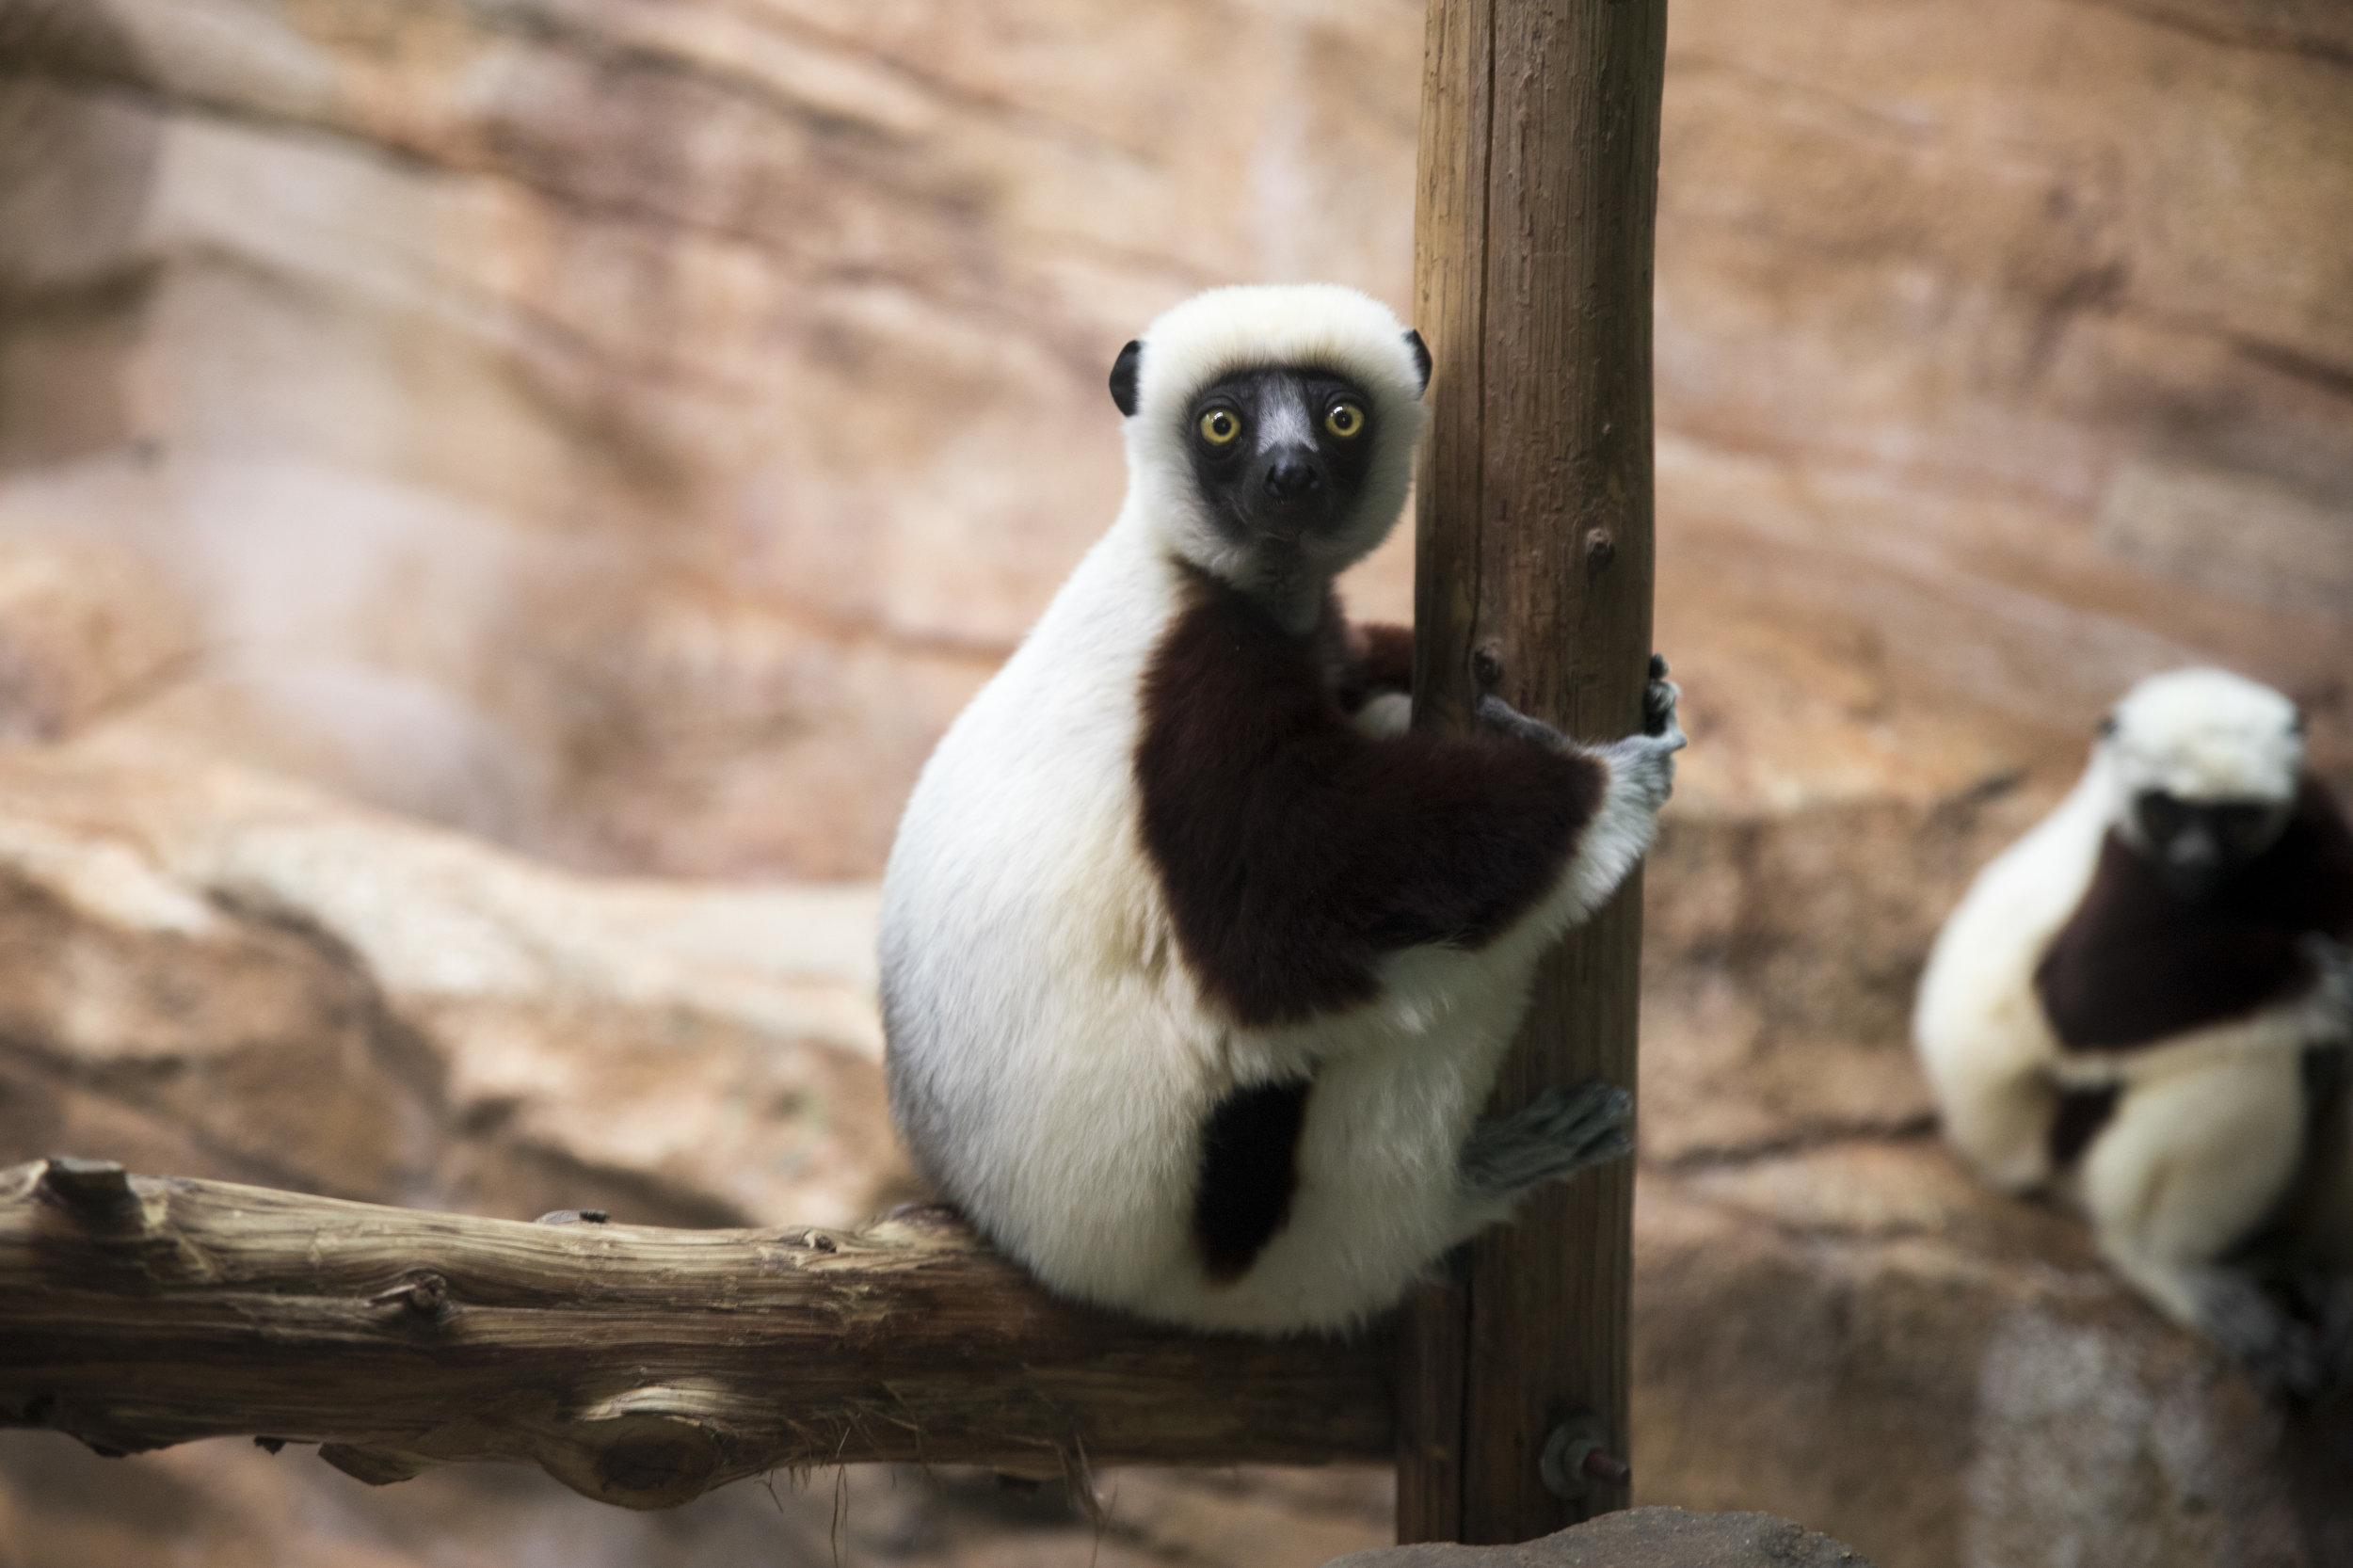 Saint_Louis_Zoo_Photography_Lemur.jpg